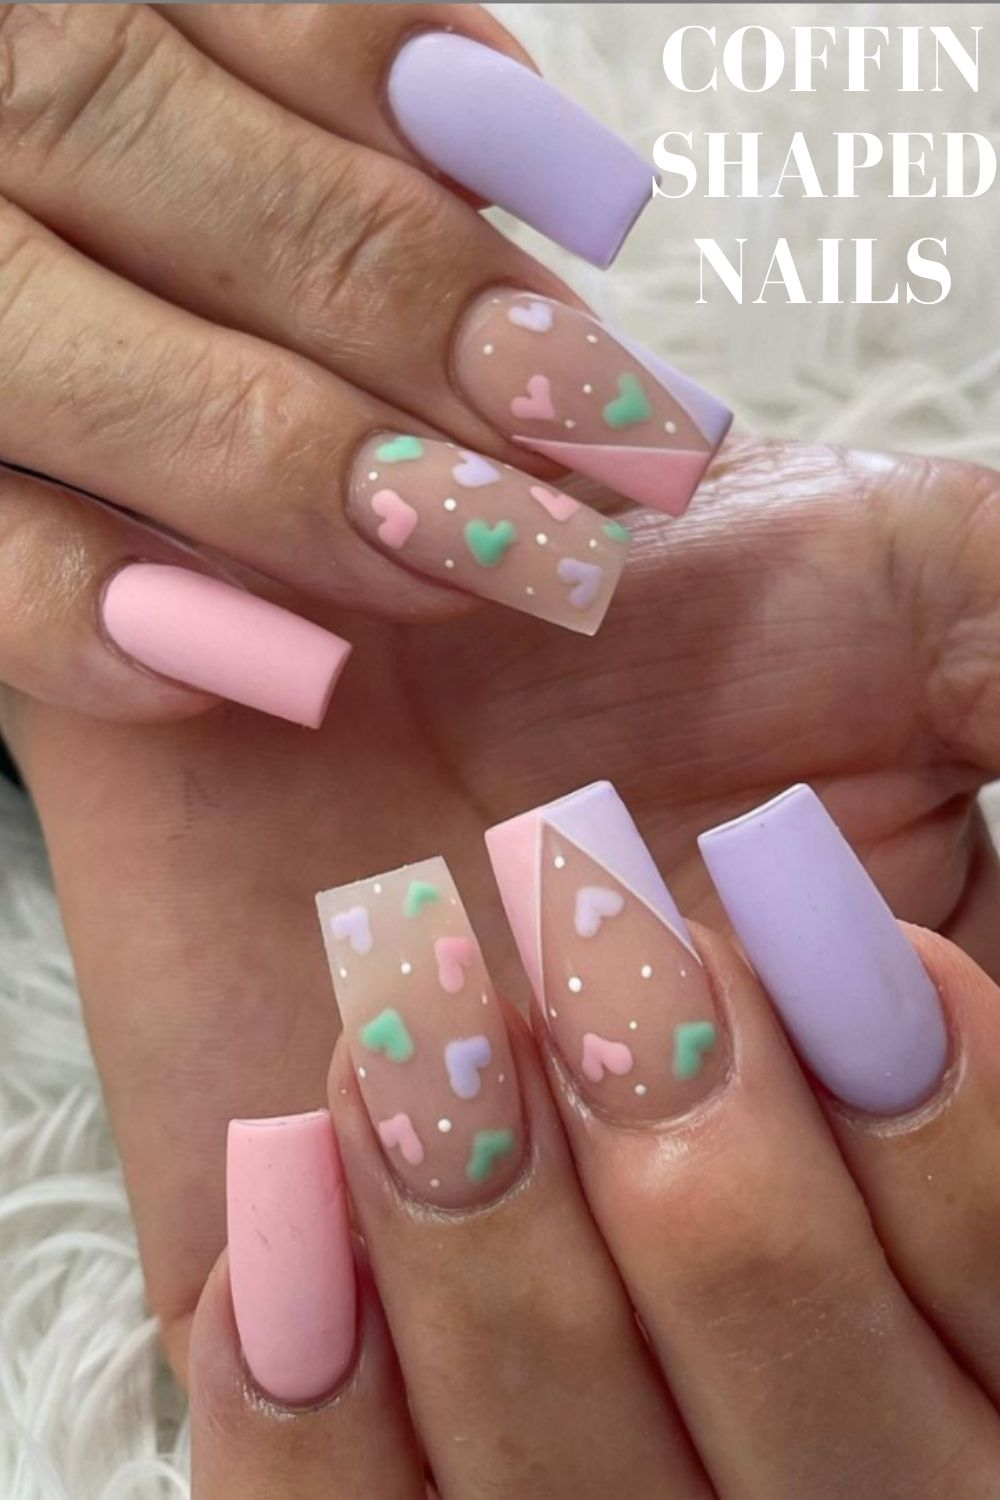 Purple and pink coffin nail design with heart